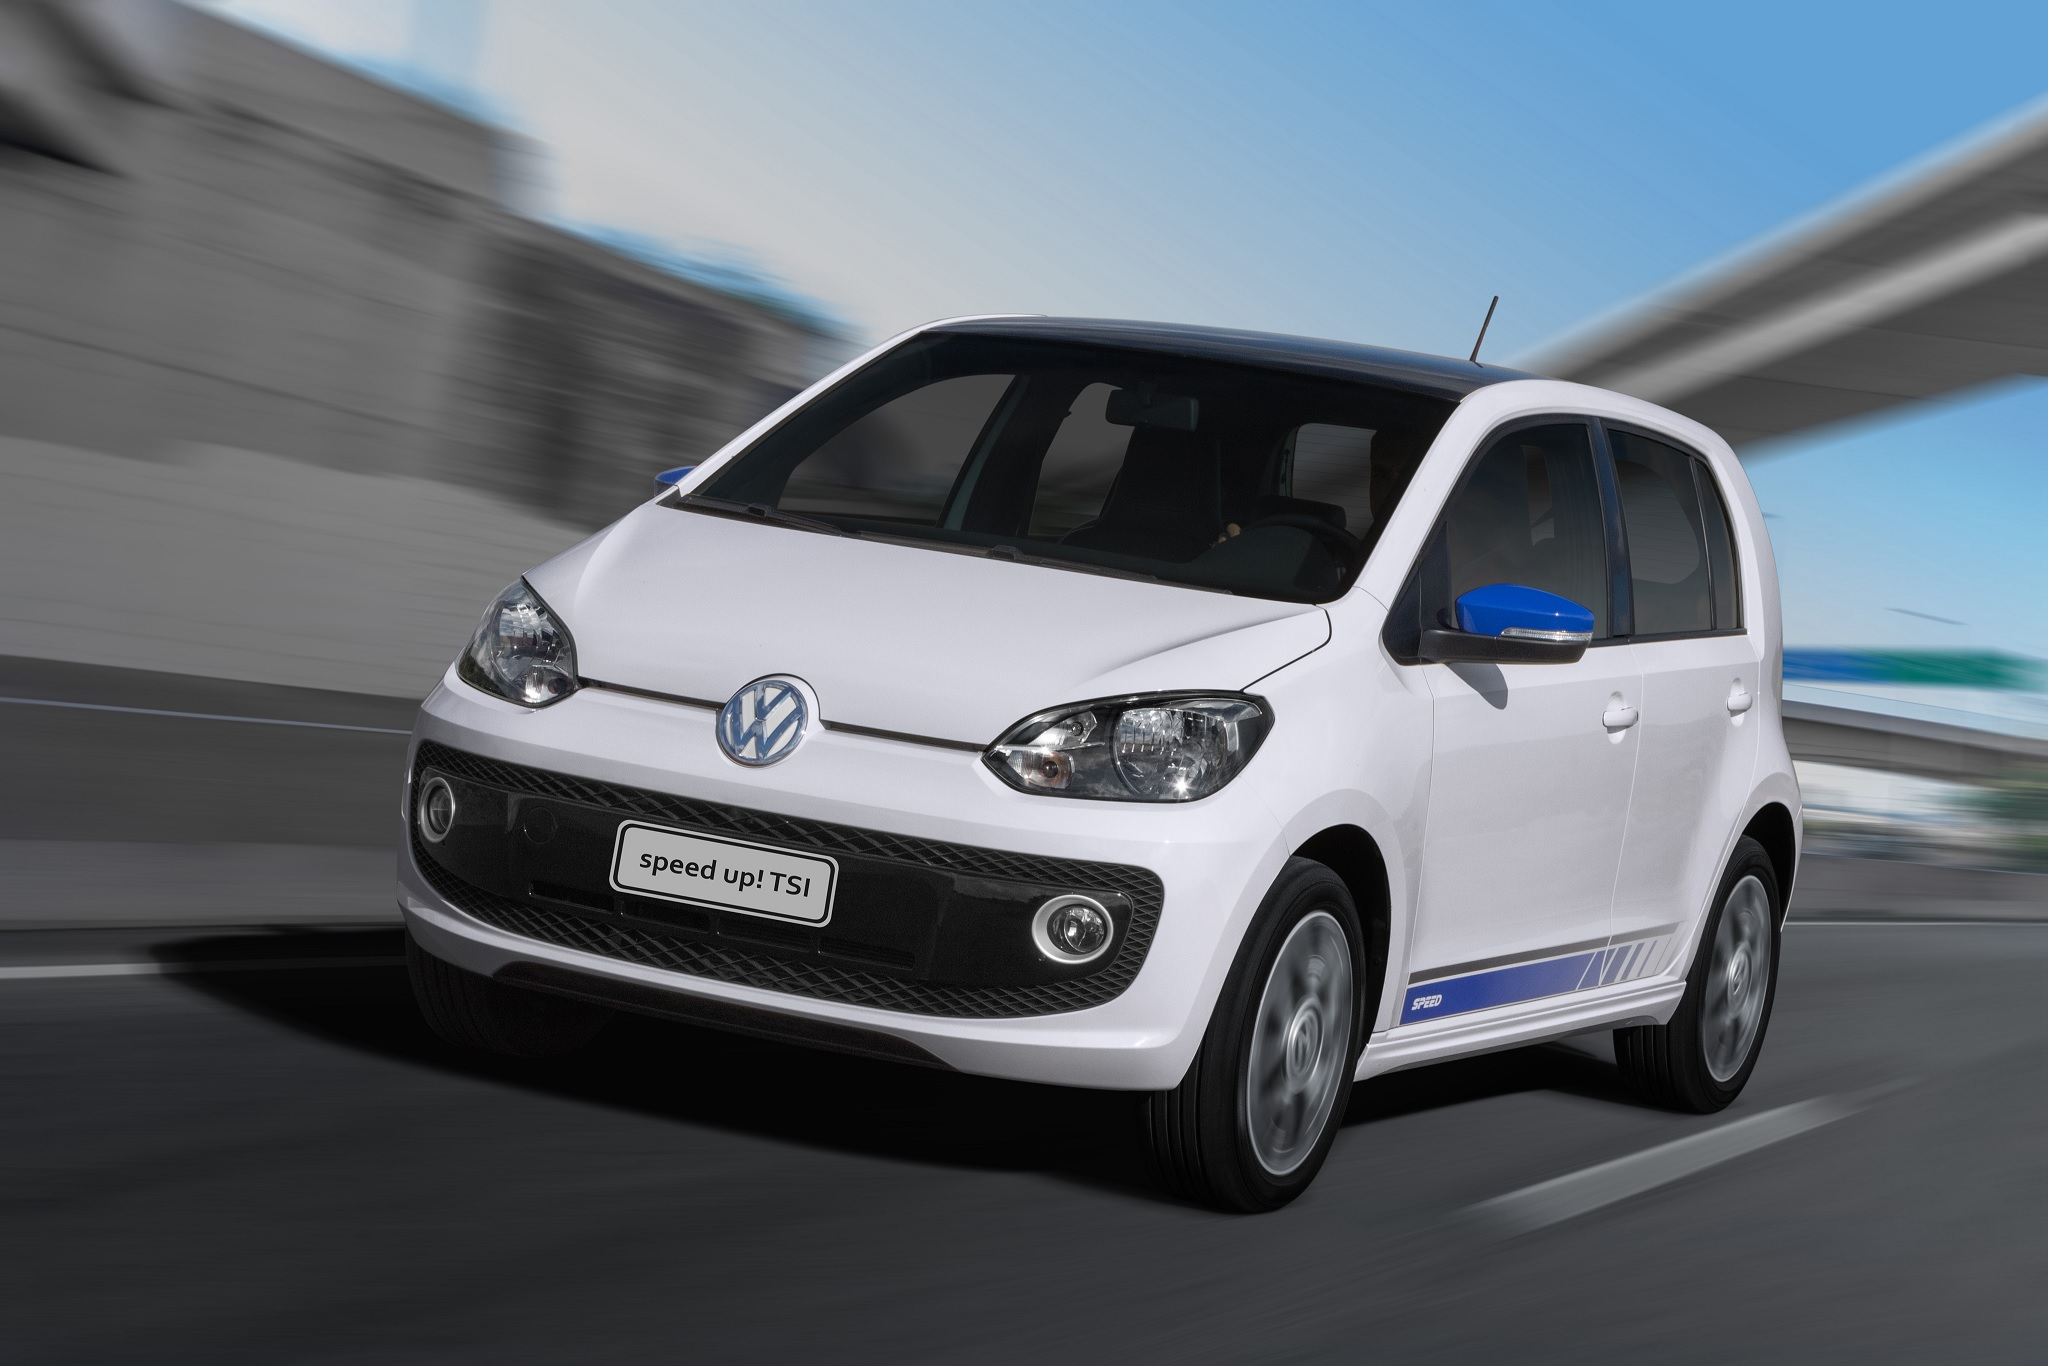 vw speed up tsi branco de grente em movimento